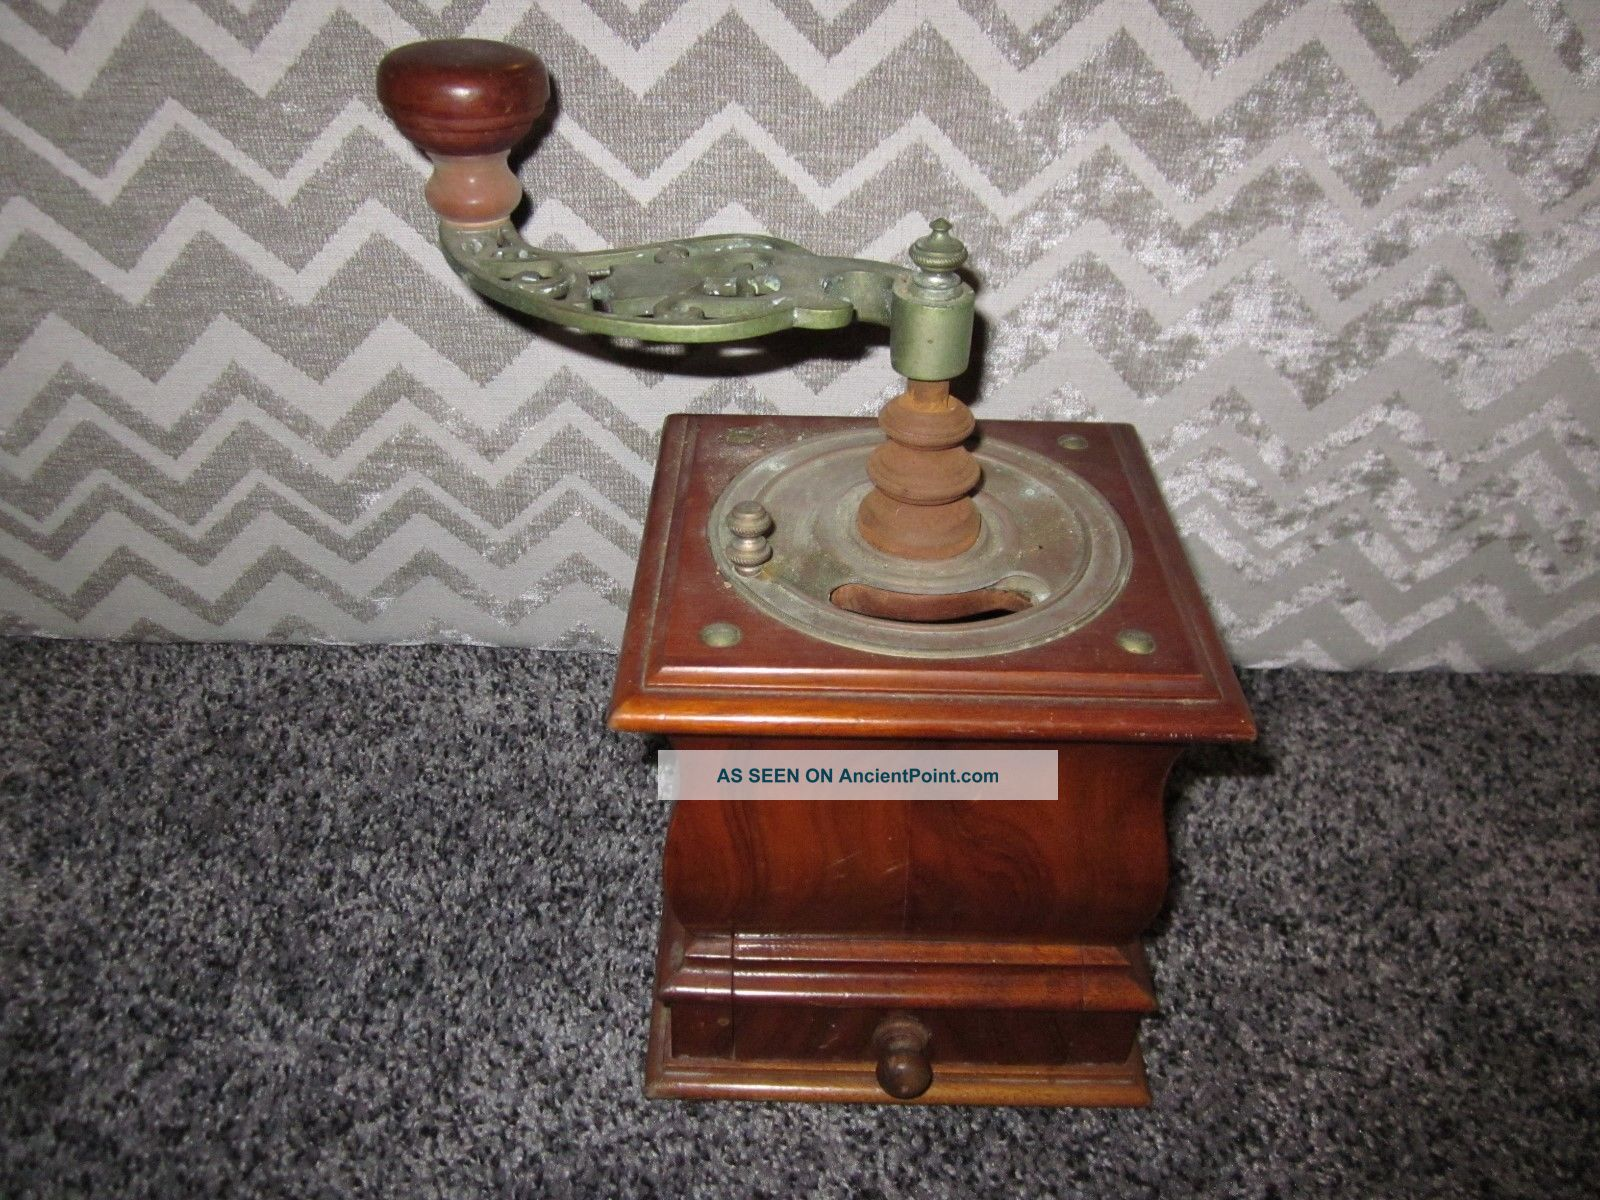 Vintage Antique Hand Crank Table Top Coffee Grinder W/dovetailed Drawer Primitives photo